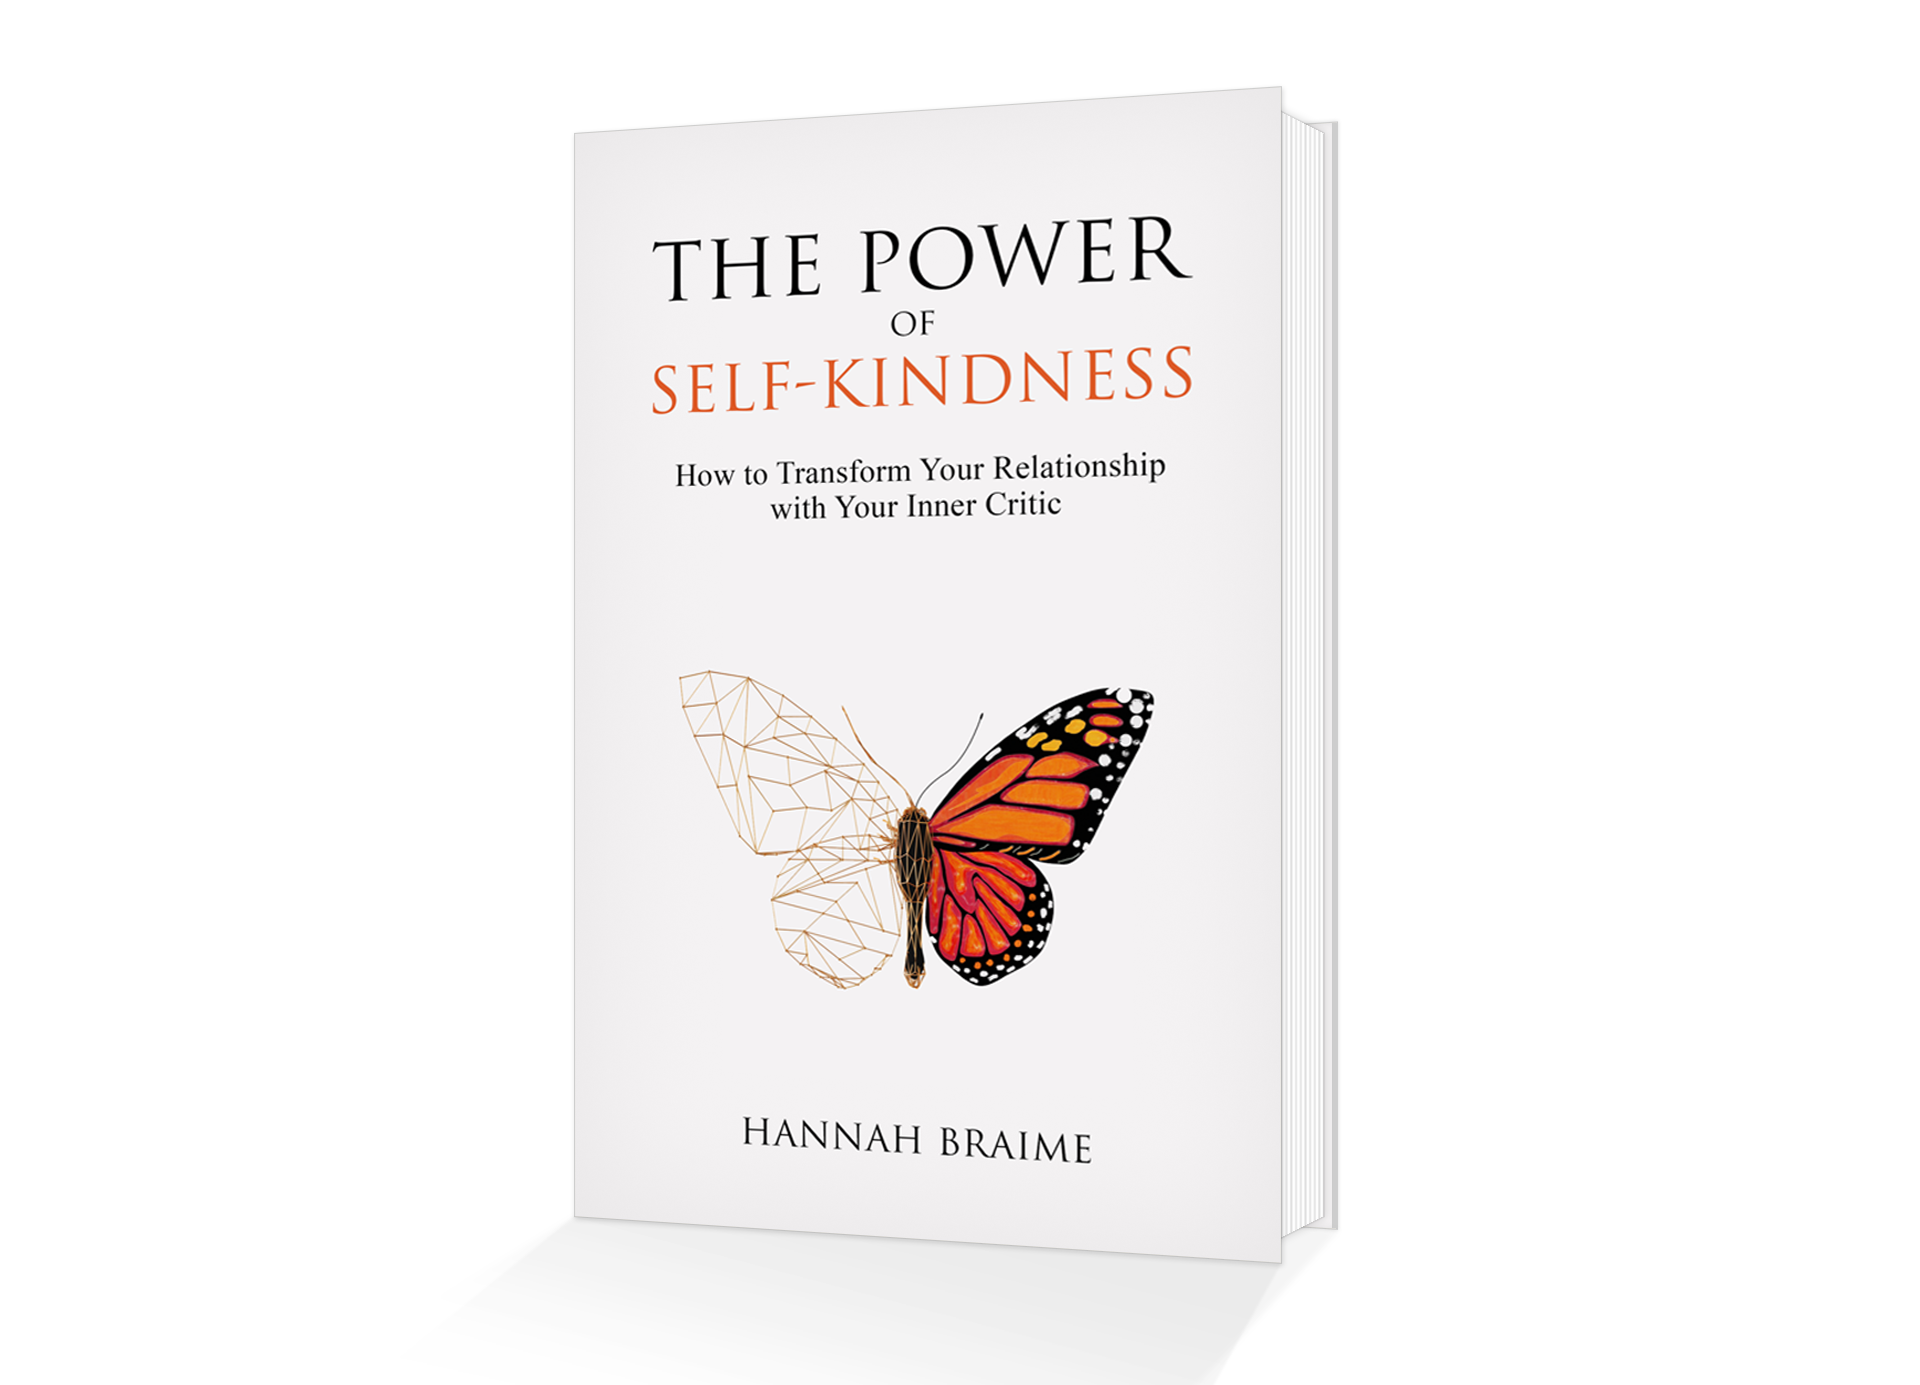 The Power of Self-Kindness: Out now